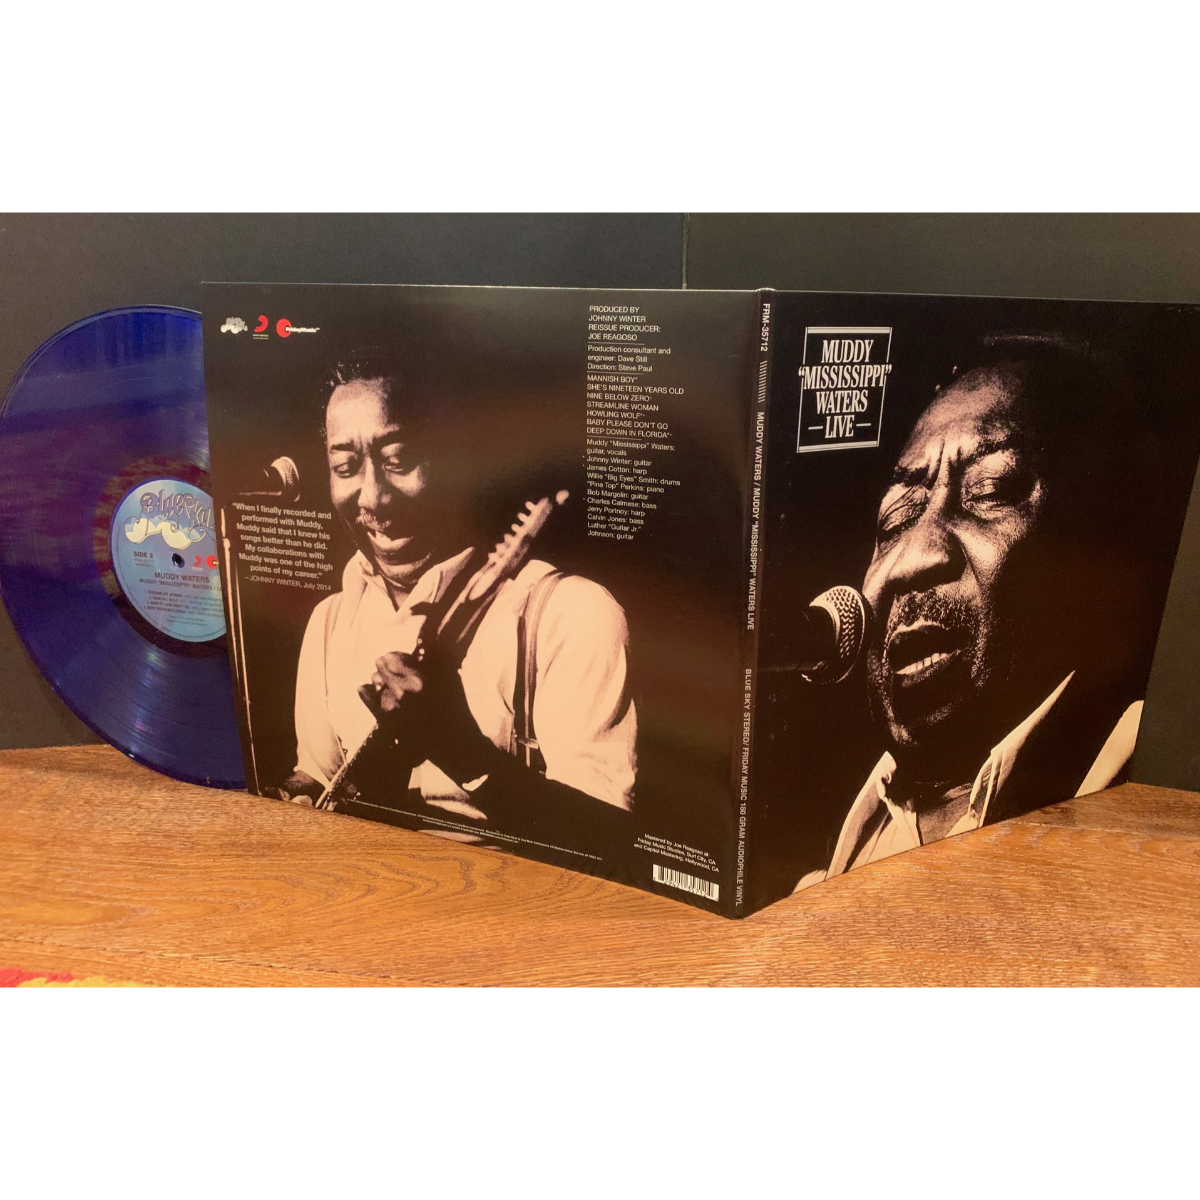 Muddy Waters Muddy Mississippi Waters Live (180 Gram Audiophile Translucent Blue & Black Swirl Vinyl/Limited Edition/Gatefold Cover)